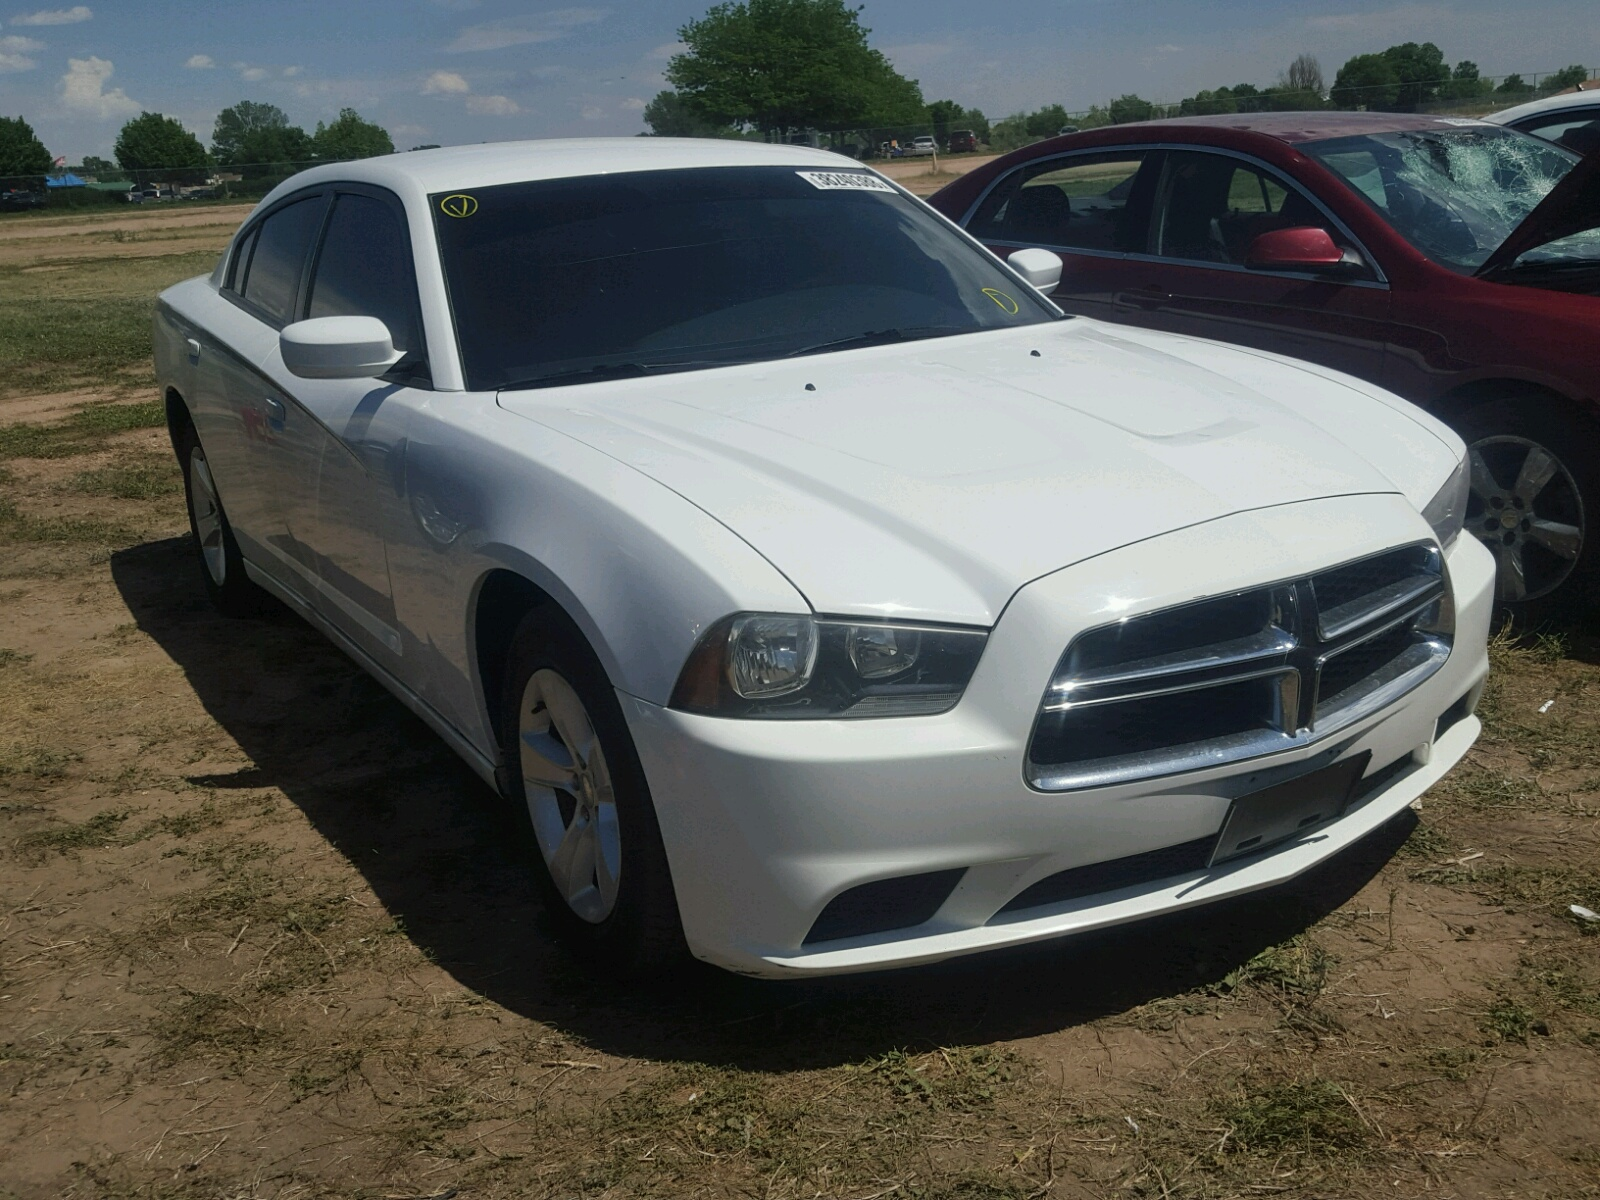 2011 Dodge Charger for sale at Copart Colorado Springs CO Lot